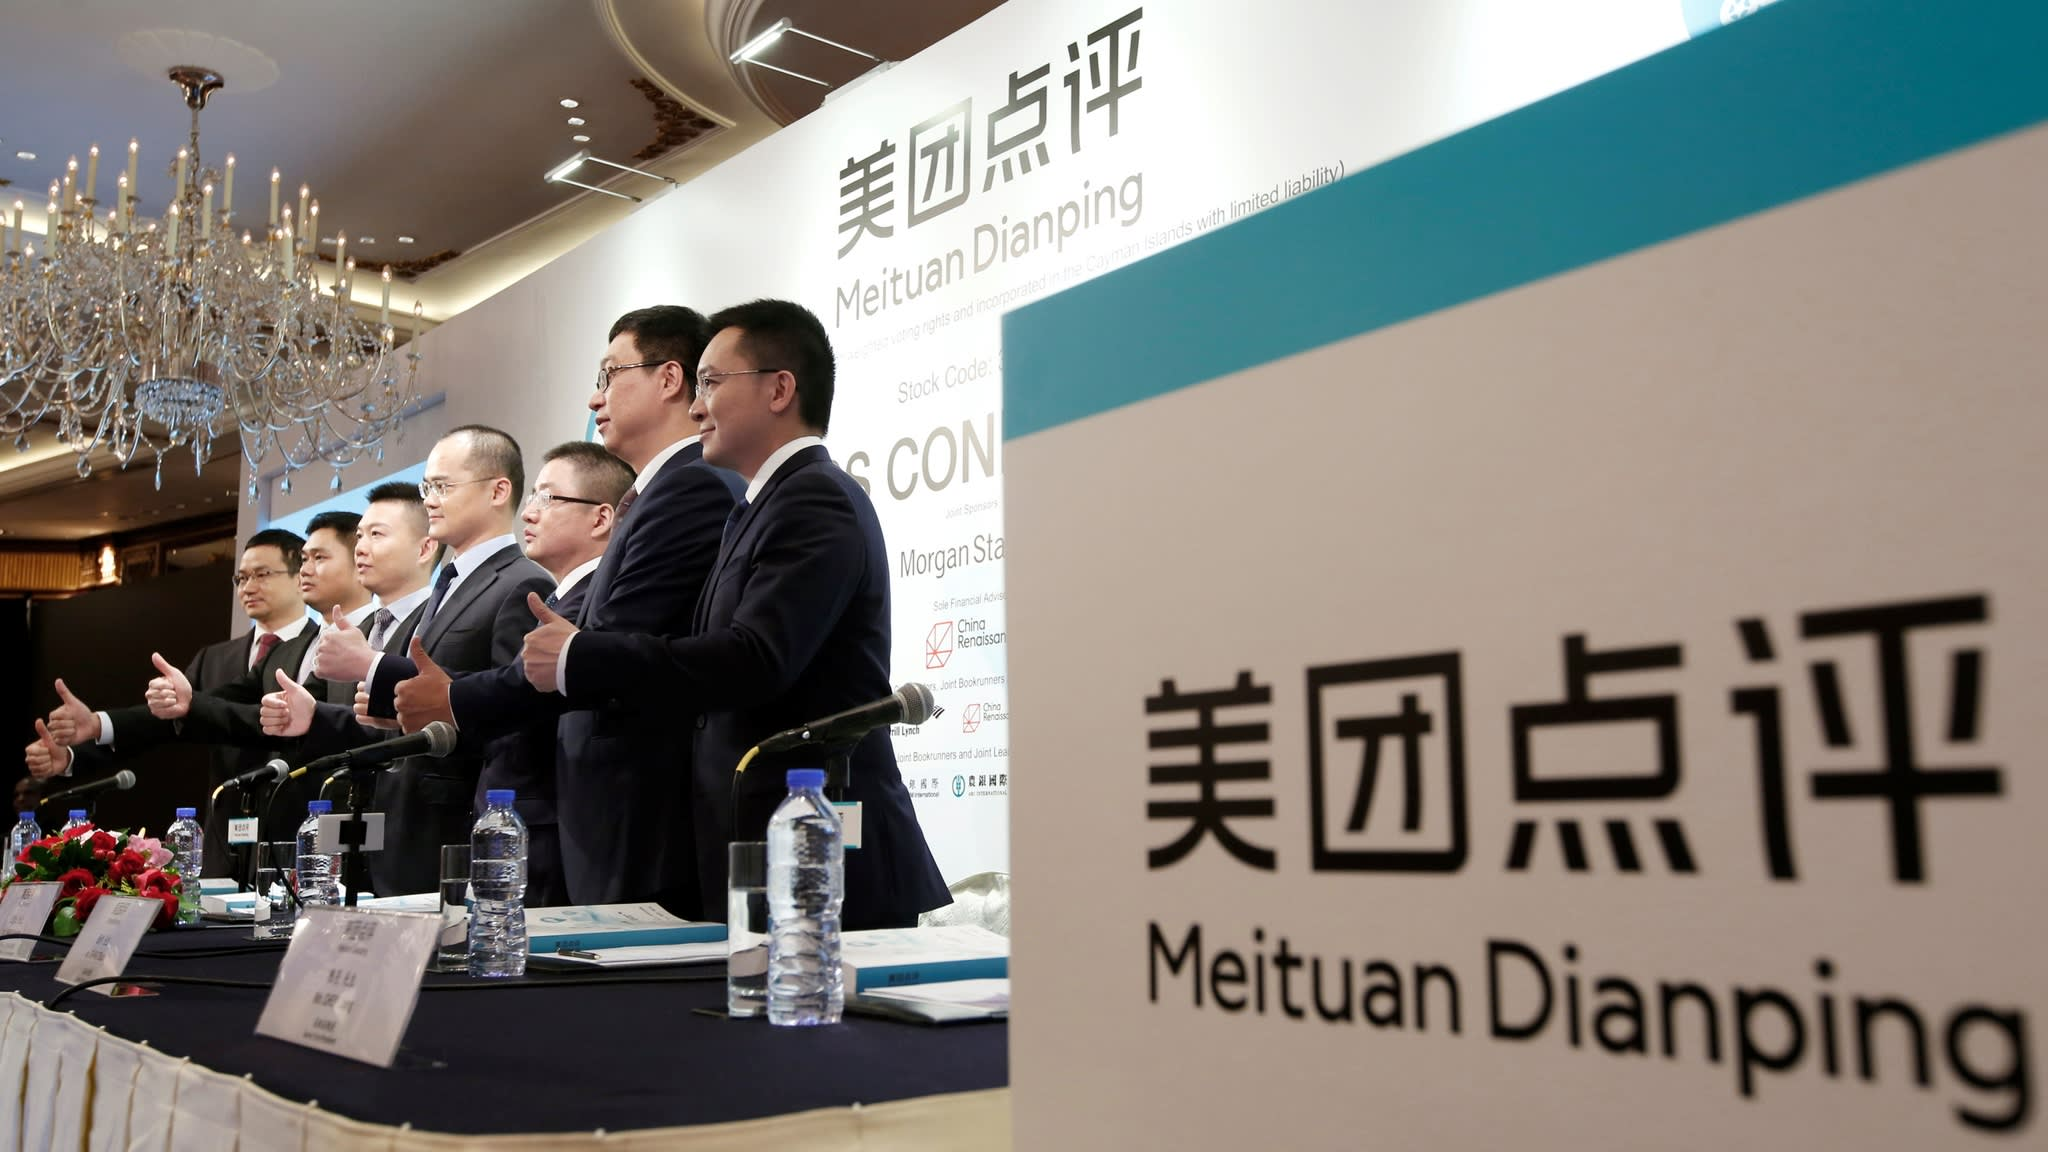 Tencent-Backed Meituan Raises $4.2 Billion in IPO Priced Near Top of Range